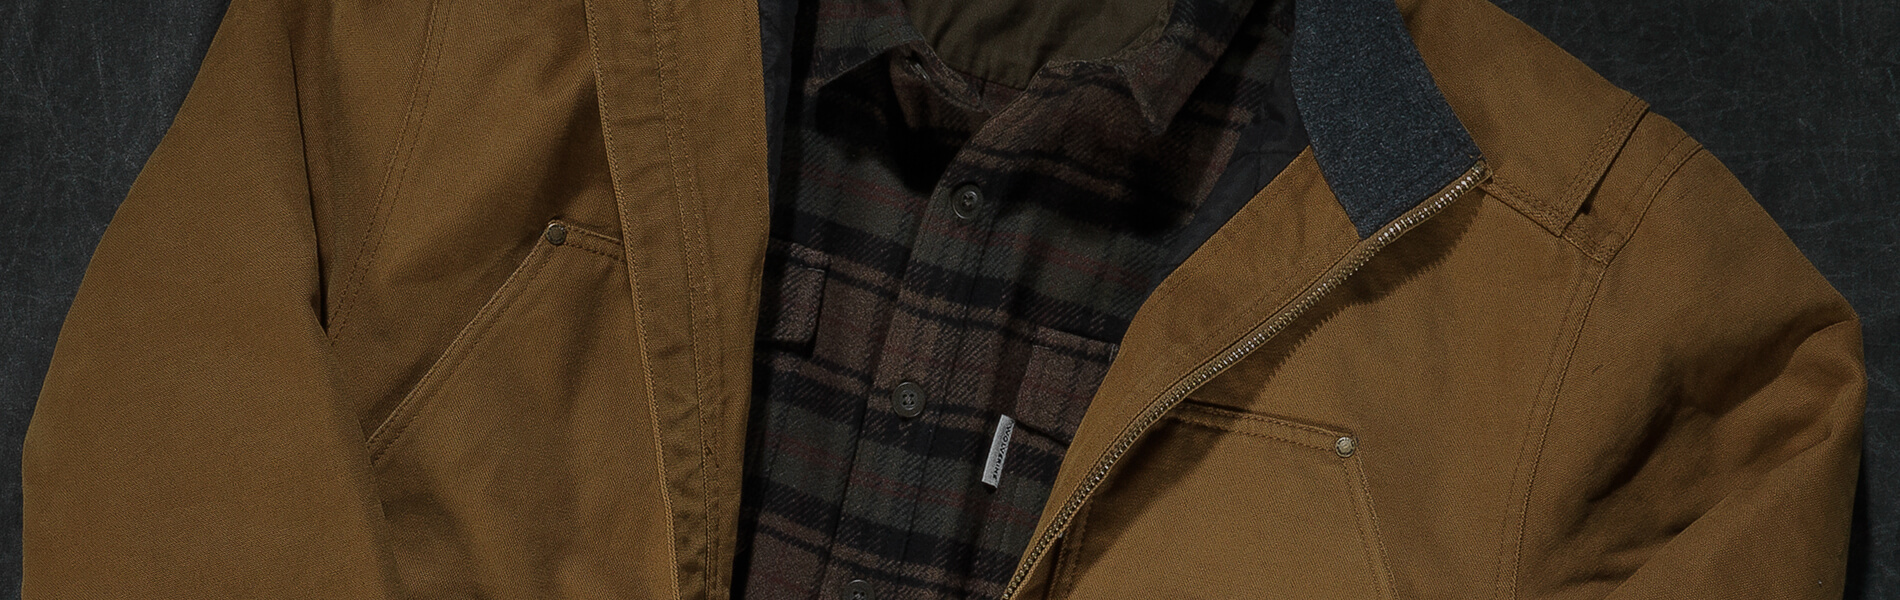 Brown jacket with green plaid shirt.